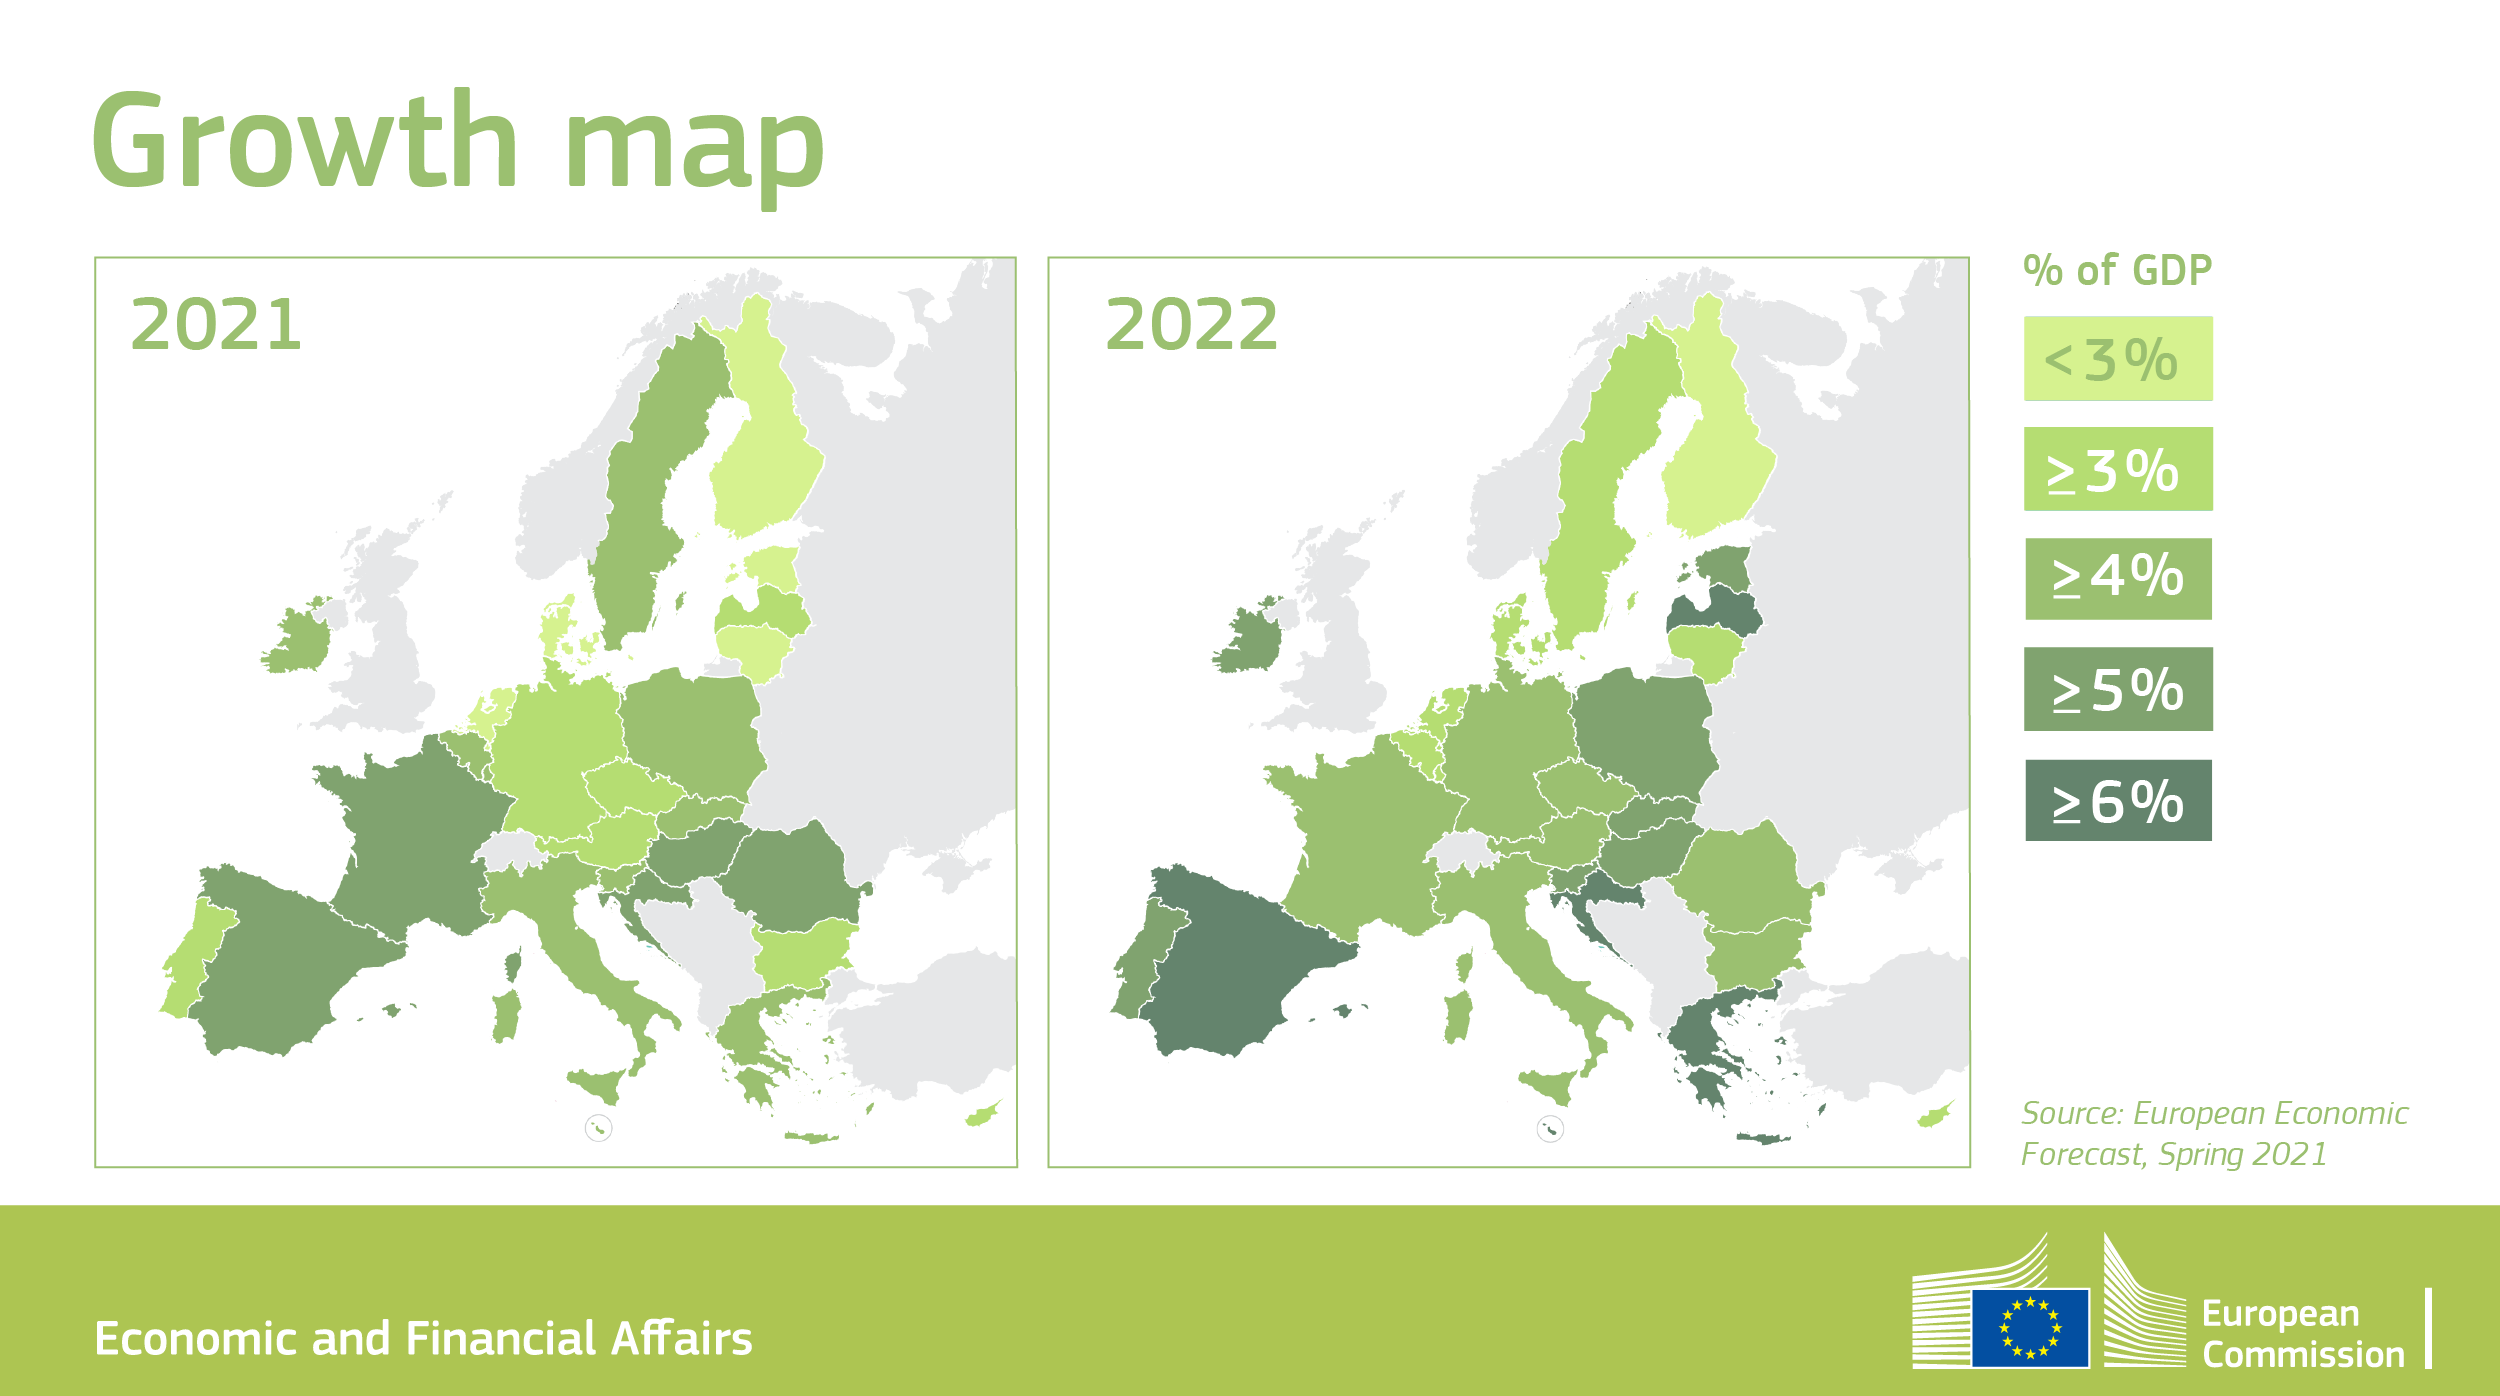 A map of Europe based on the economic forecast